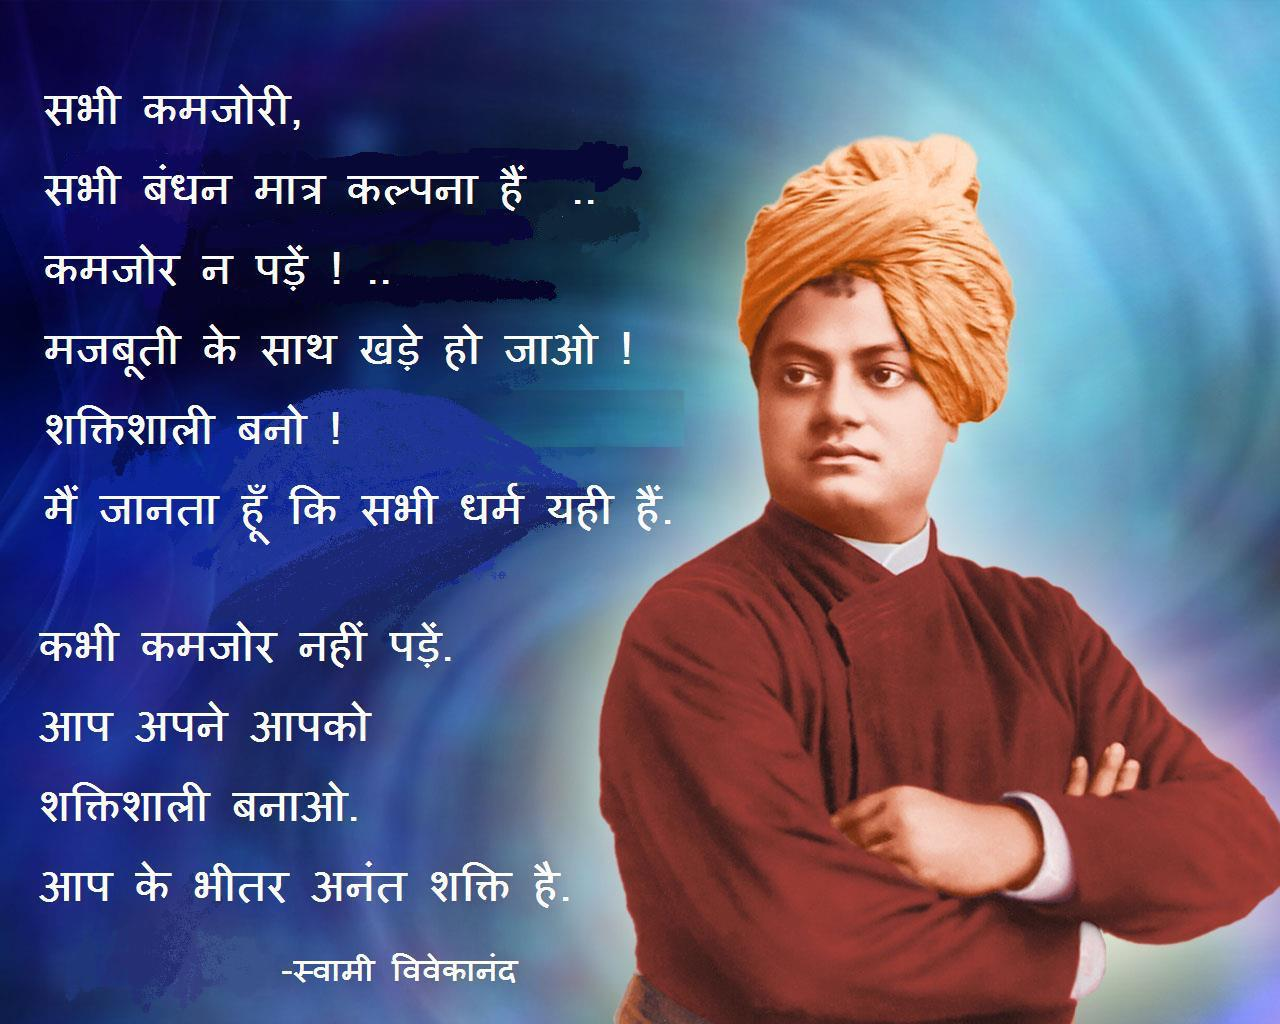 education quotes wallpapers in hindi - photo #8